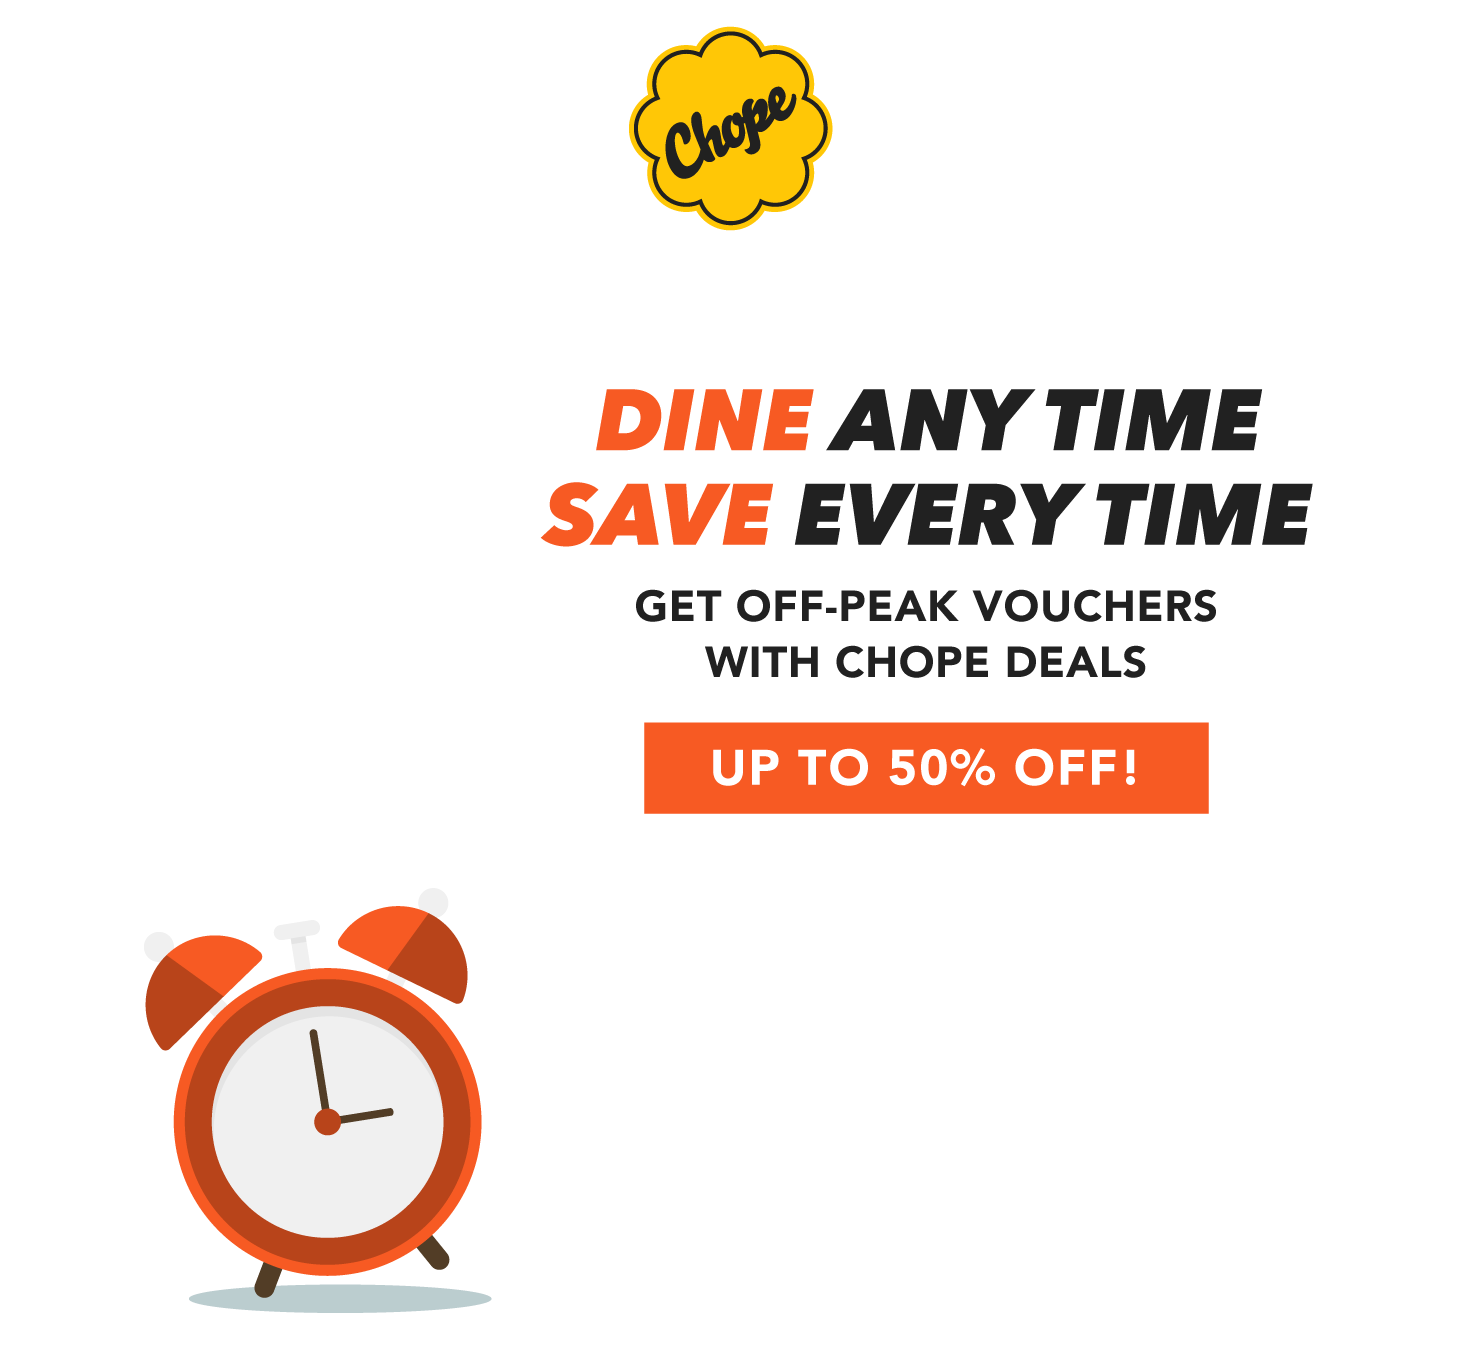 Dine Any Time Save Every With Chope Singapore Duck Tour Voucher Vouchers